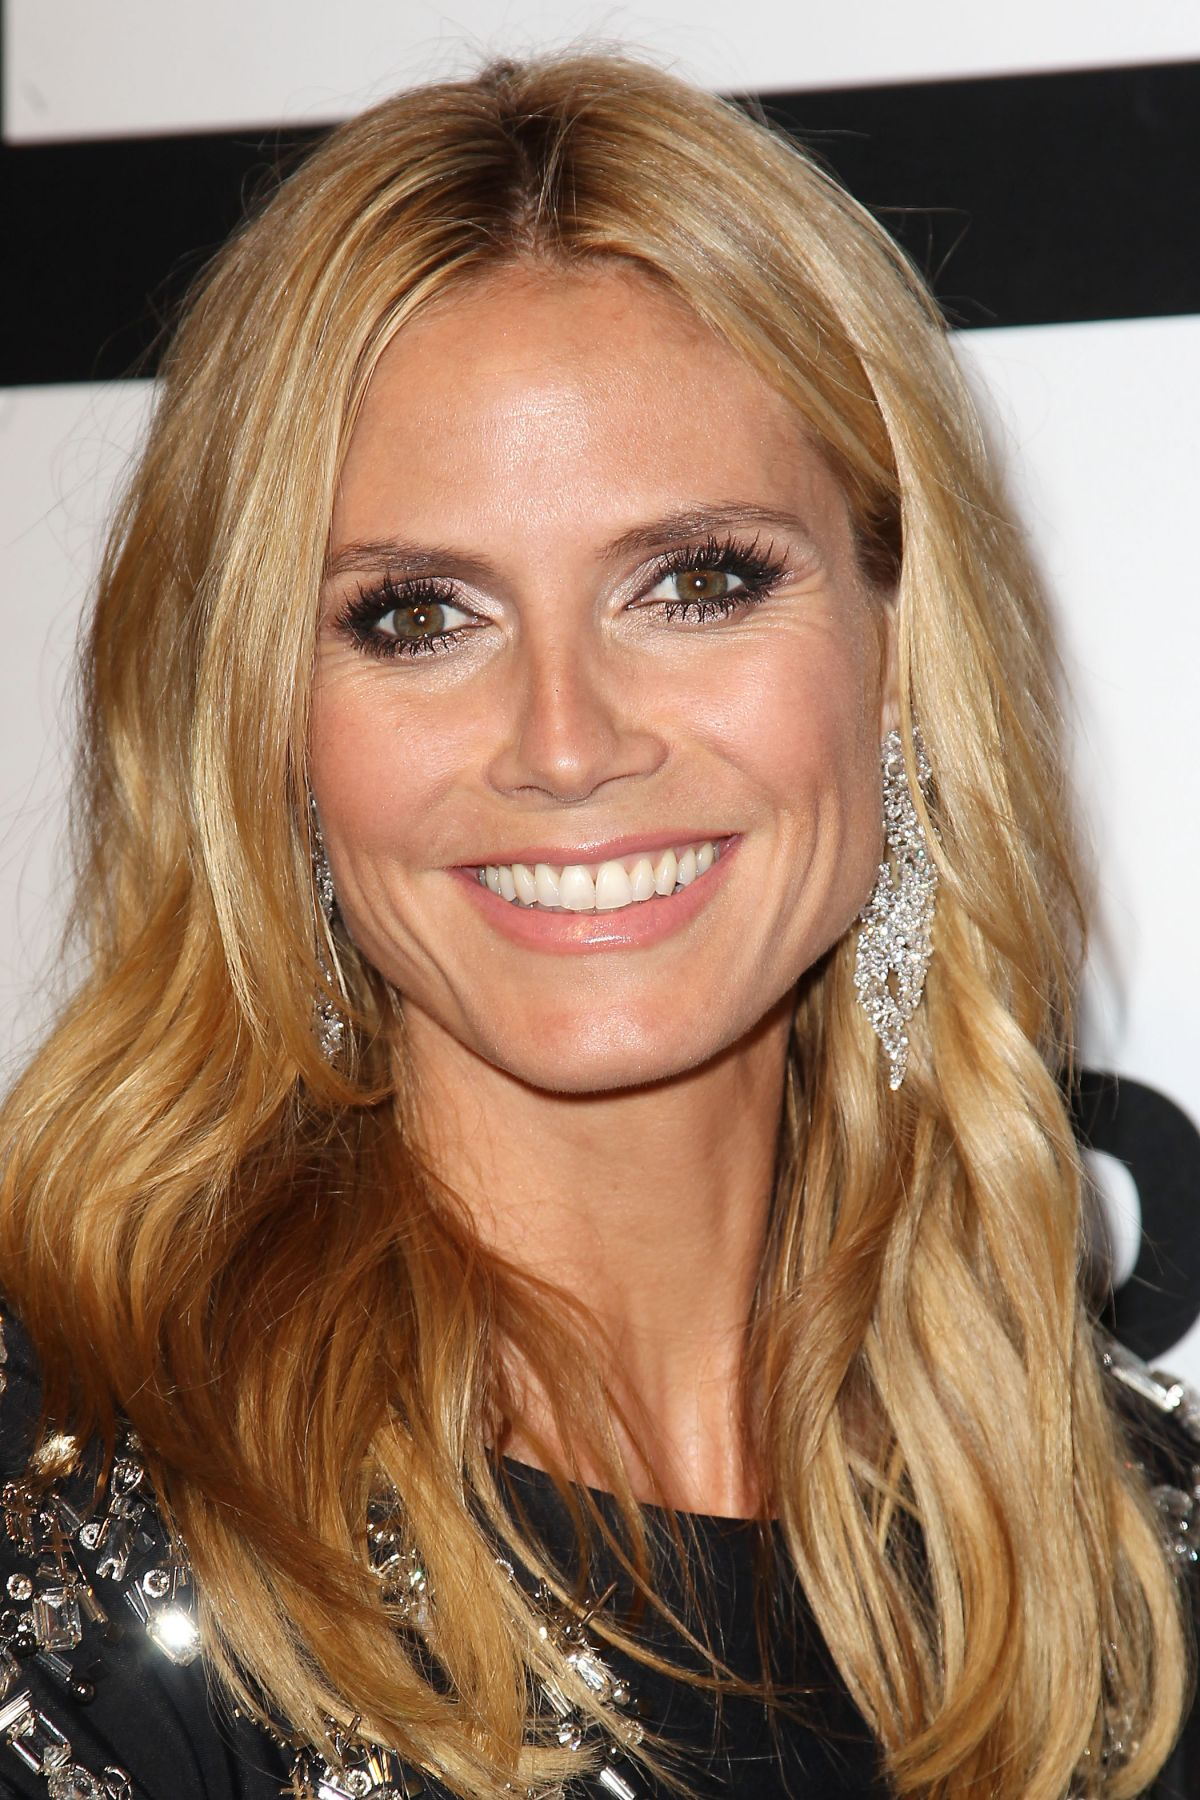 heidi-klum-at-2015-clio-awards-in-new-york_13